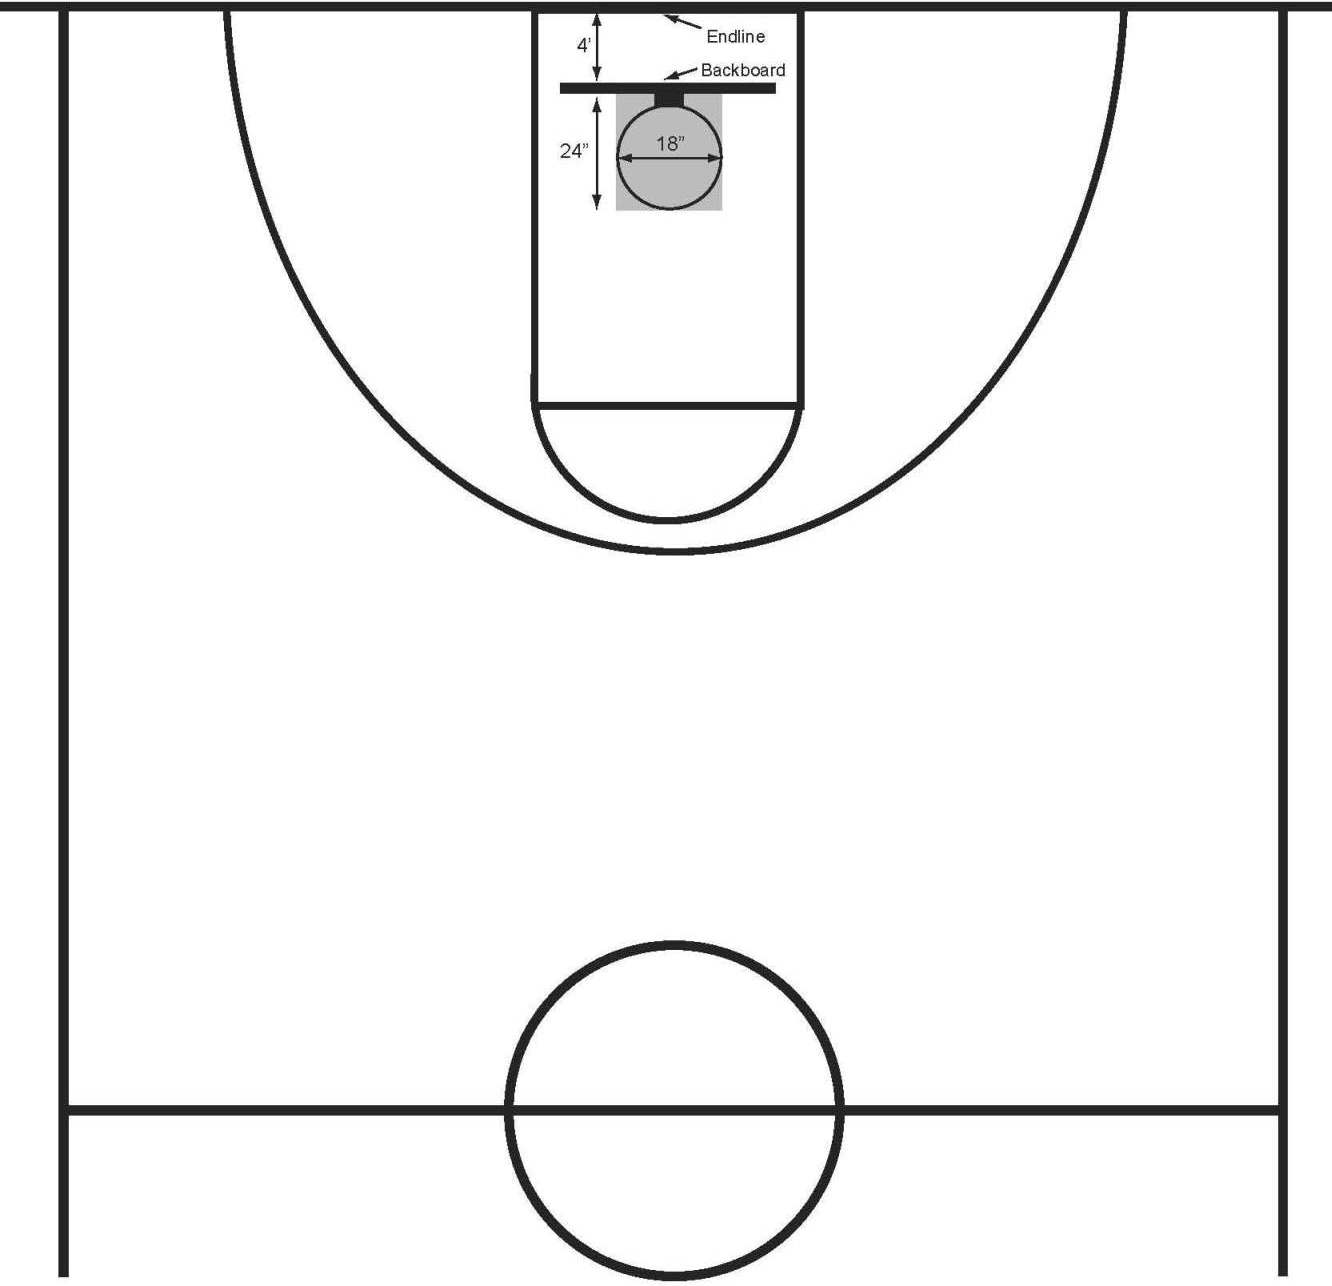 Basketball half court diagram - ClipArt Best - ClipArt Best